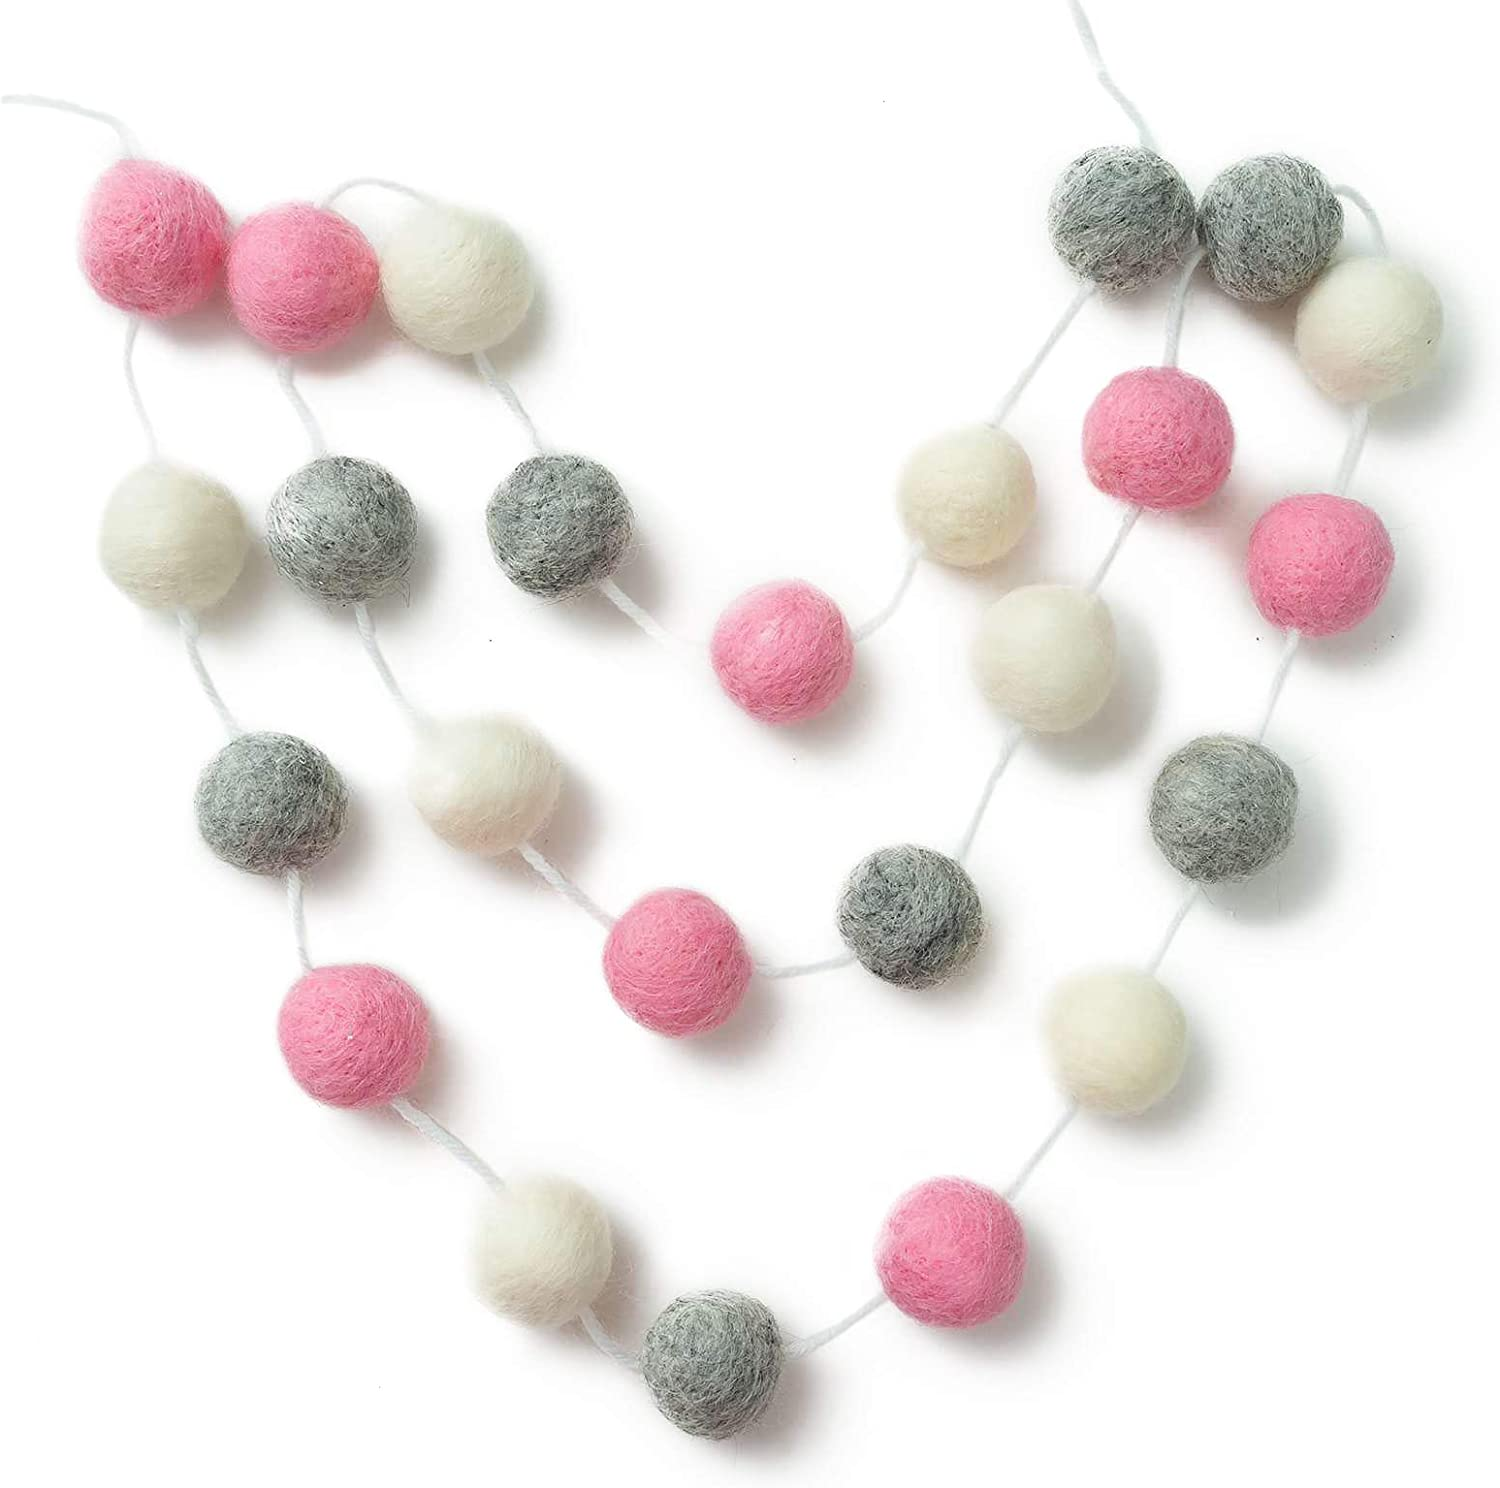 HEYNOVA Wool Felt Garland Pom Pom Balls, 24 Cute Wool Felt Balls with Rope, Indoor Party Accessories and Christmas Decorations, Bright and Colorful Home Décor – Pink